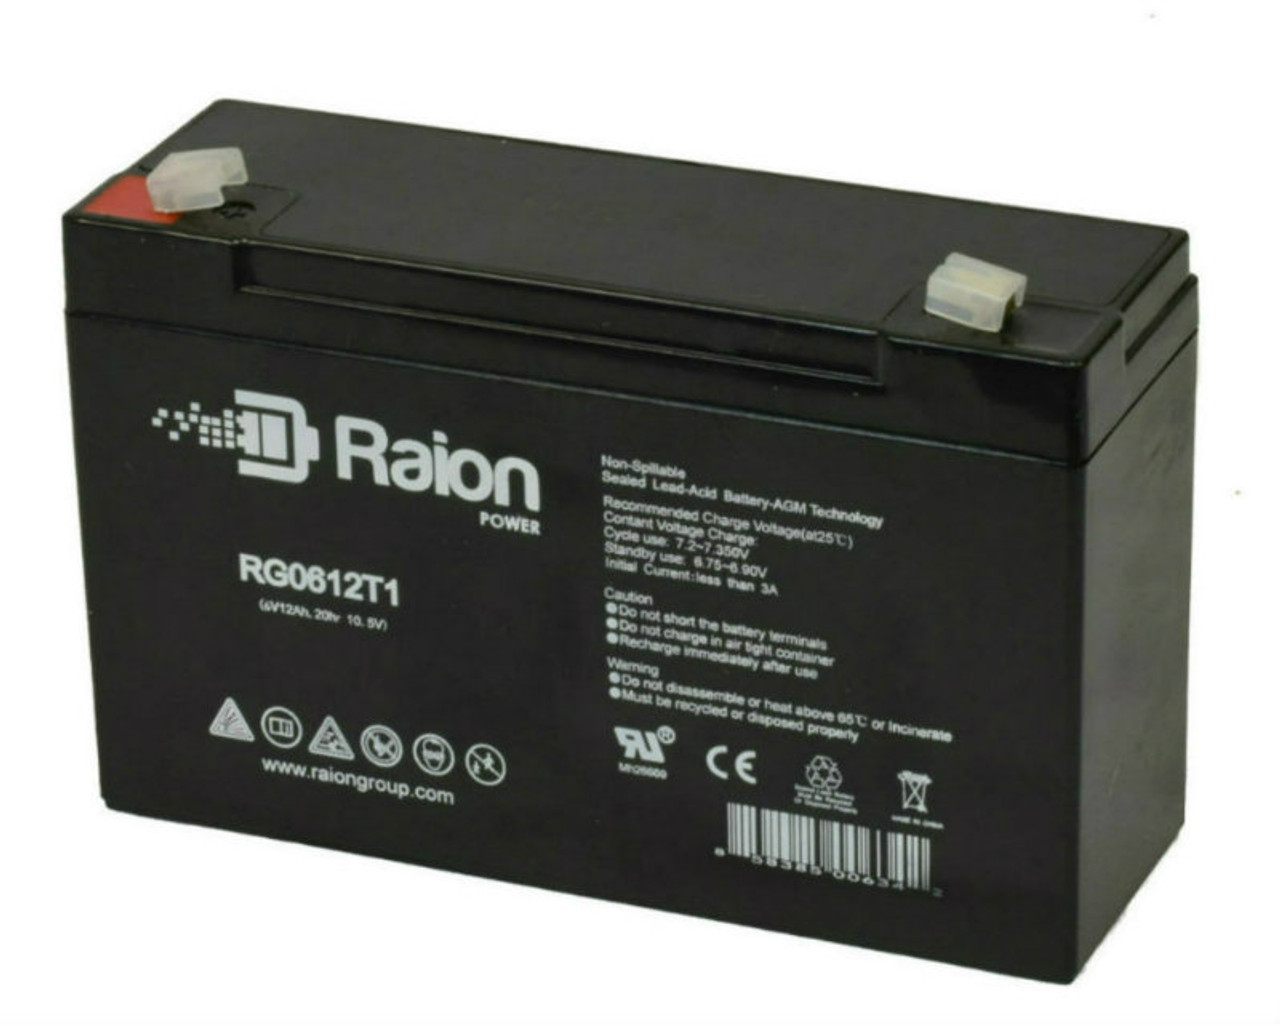 Raion Power RG06120T1 Replacement Battery Pack for Holophane FH6 emergency light